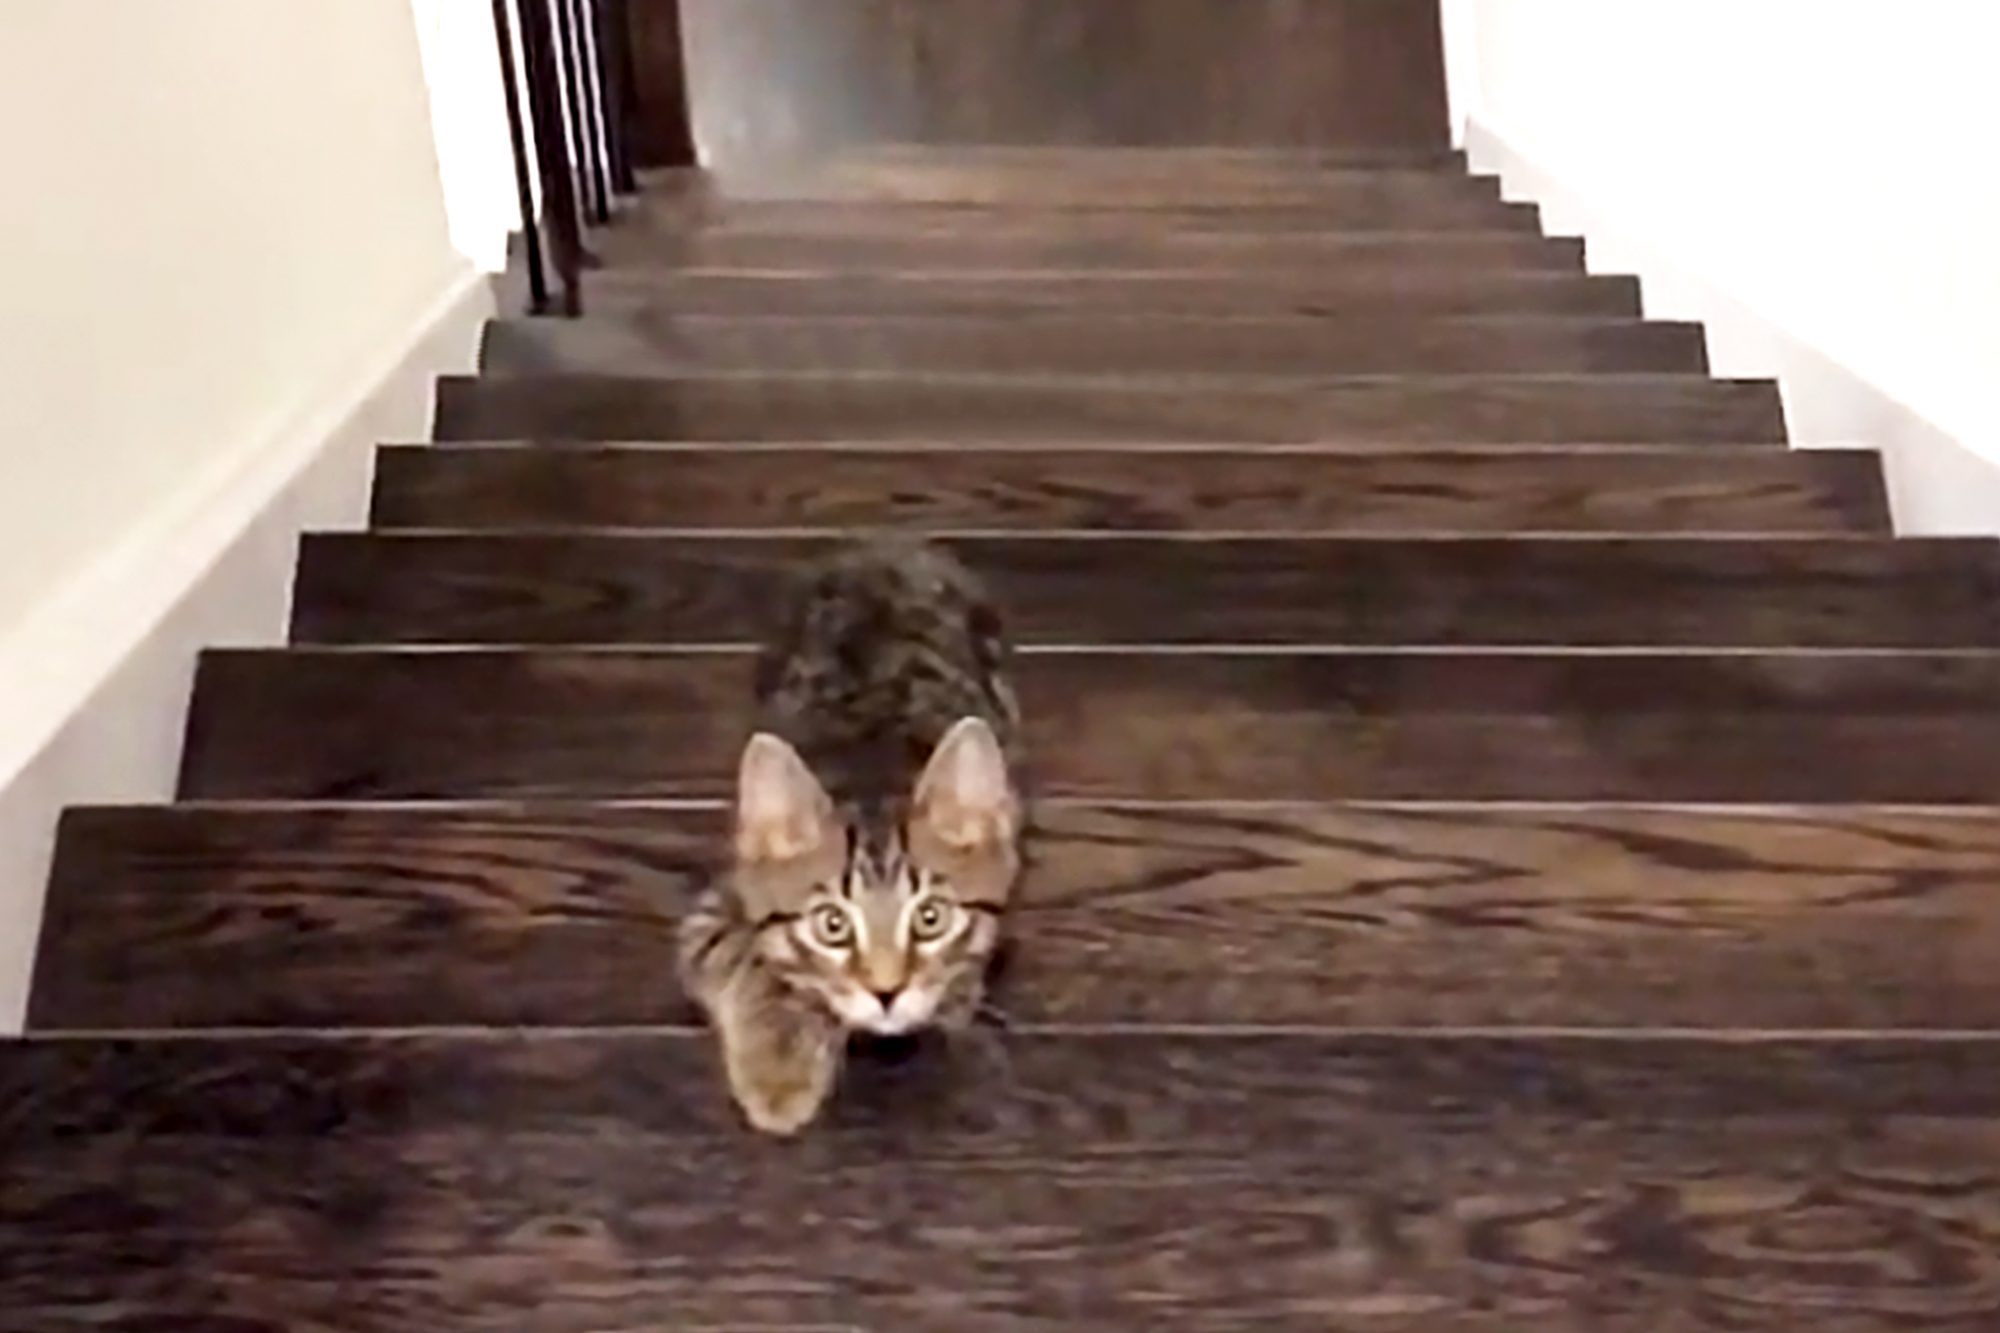 a cat is walking up the stairs playing red light/ green light with the owner